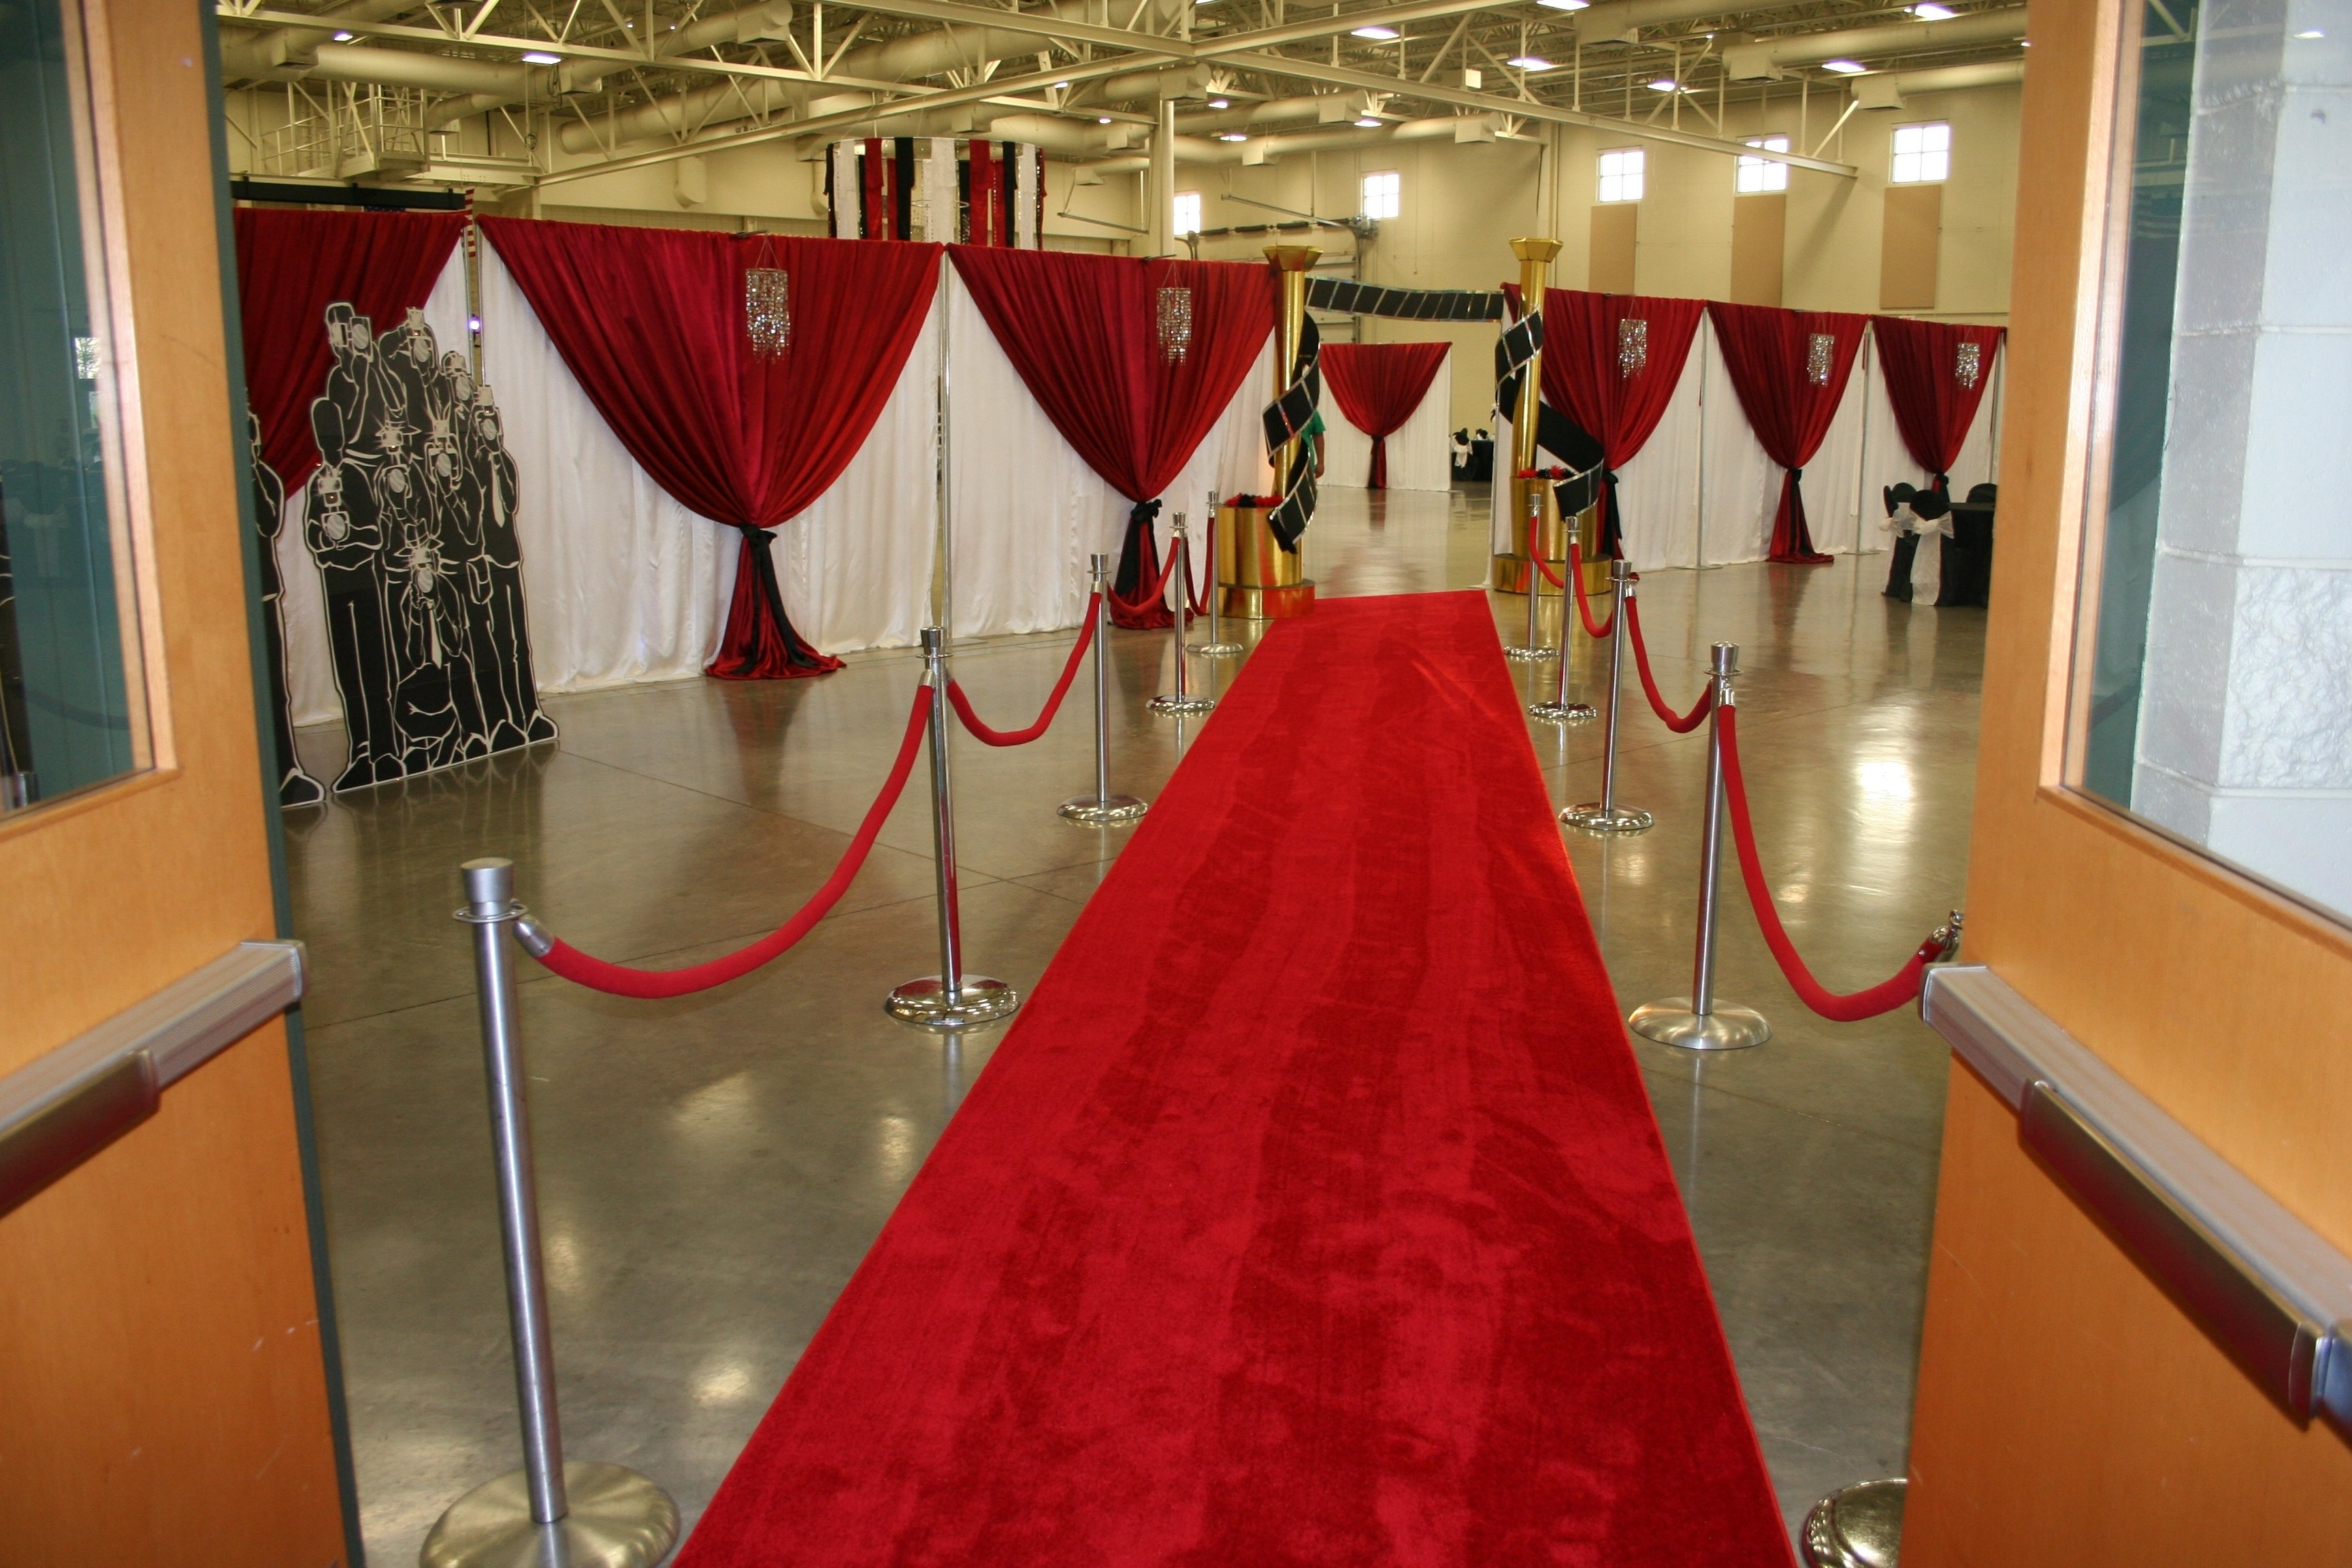 10 Famous Red Carpet Theme Party Ideas red carpet themed party ideas e280a2 carpet 2020